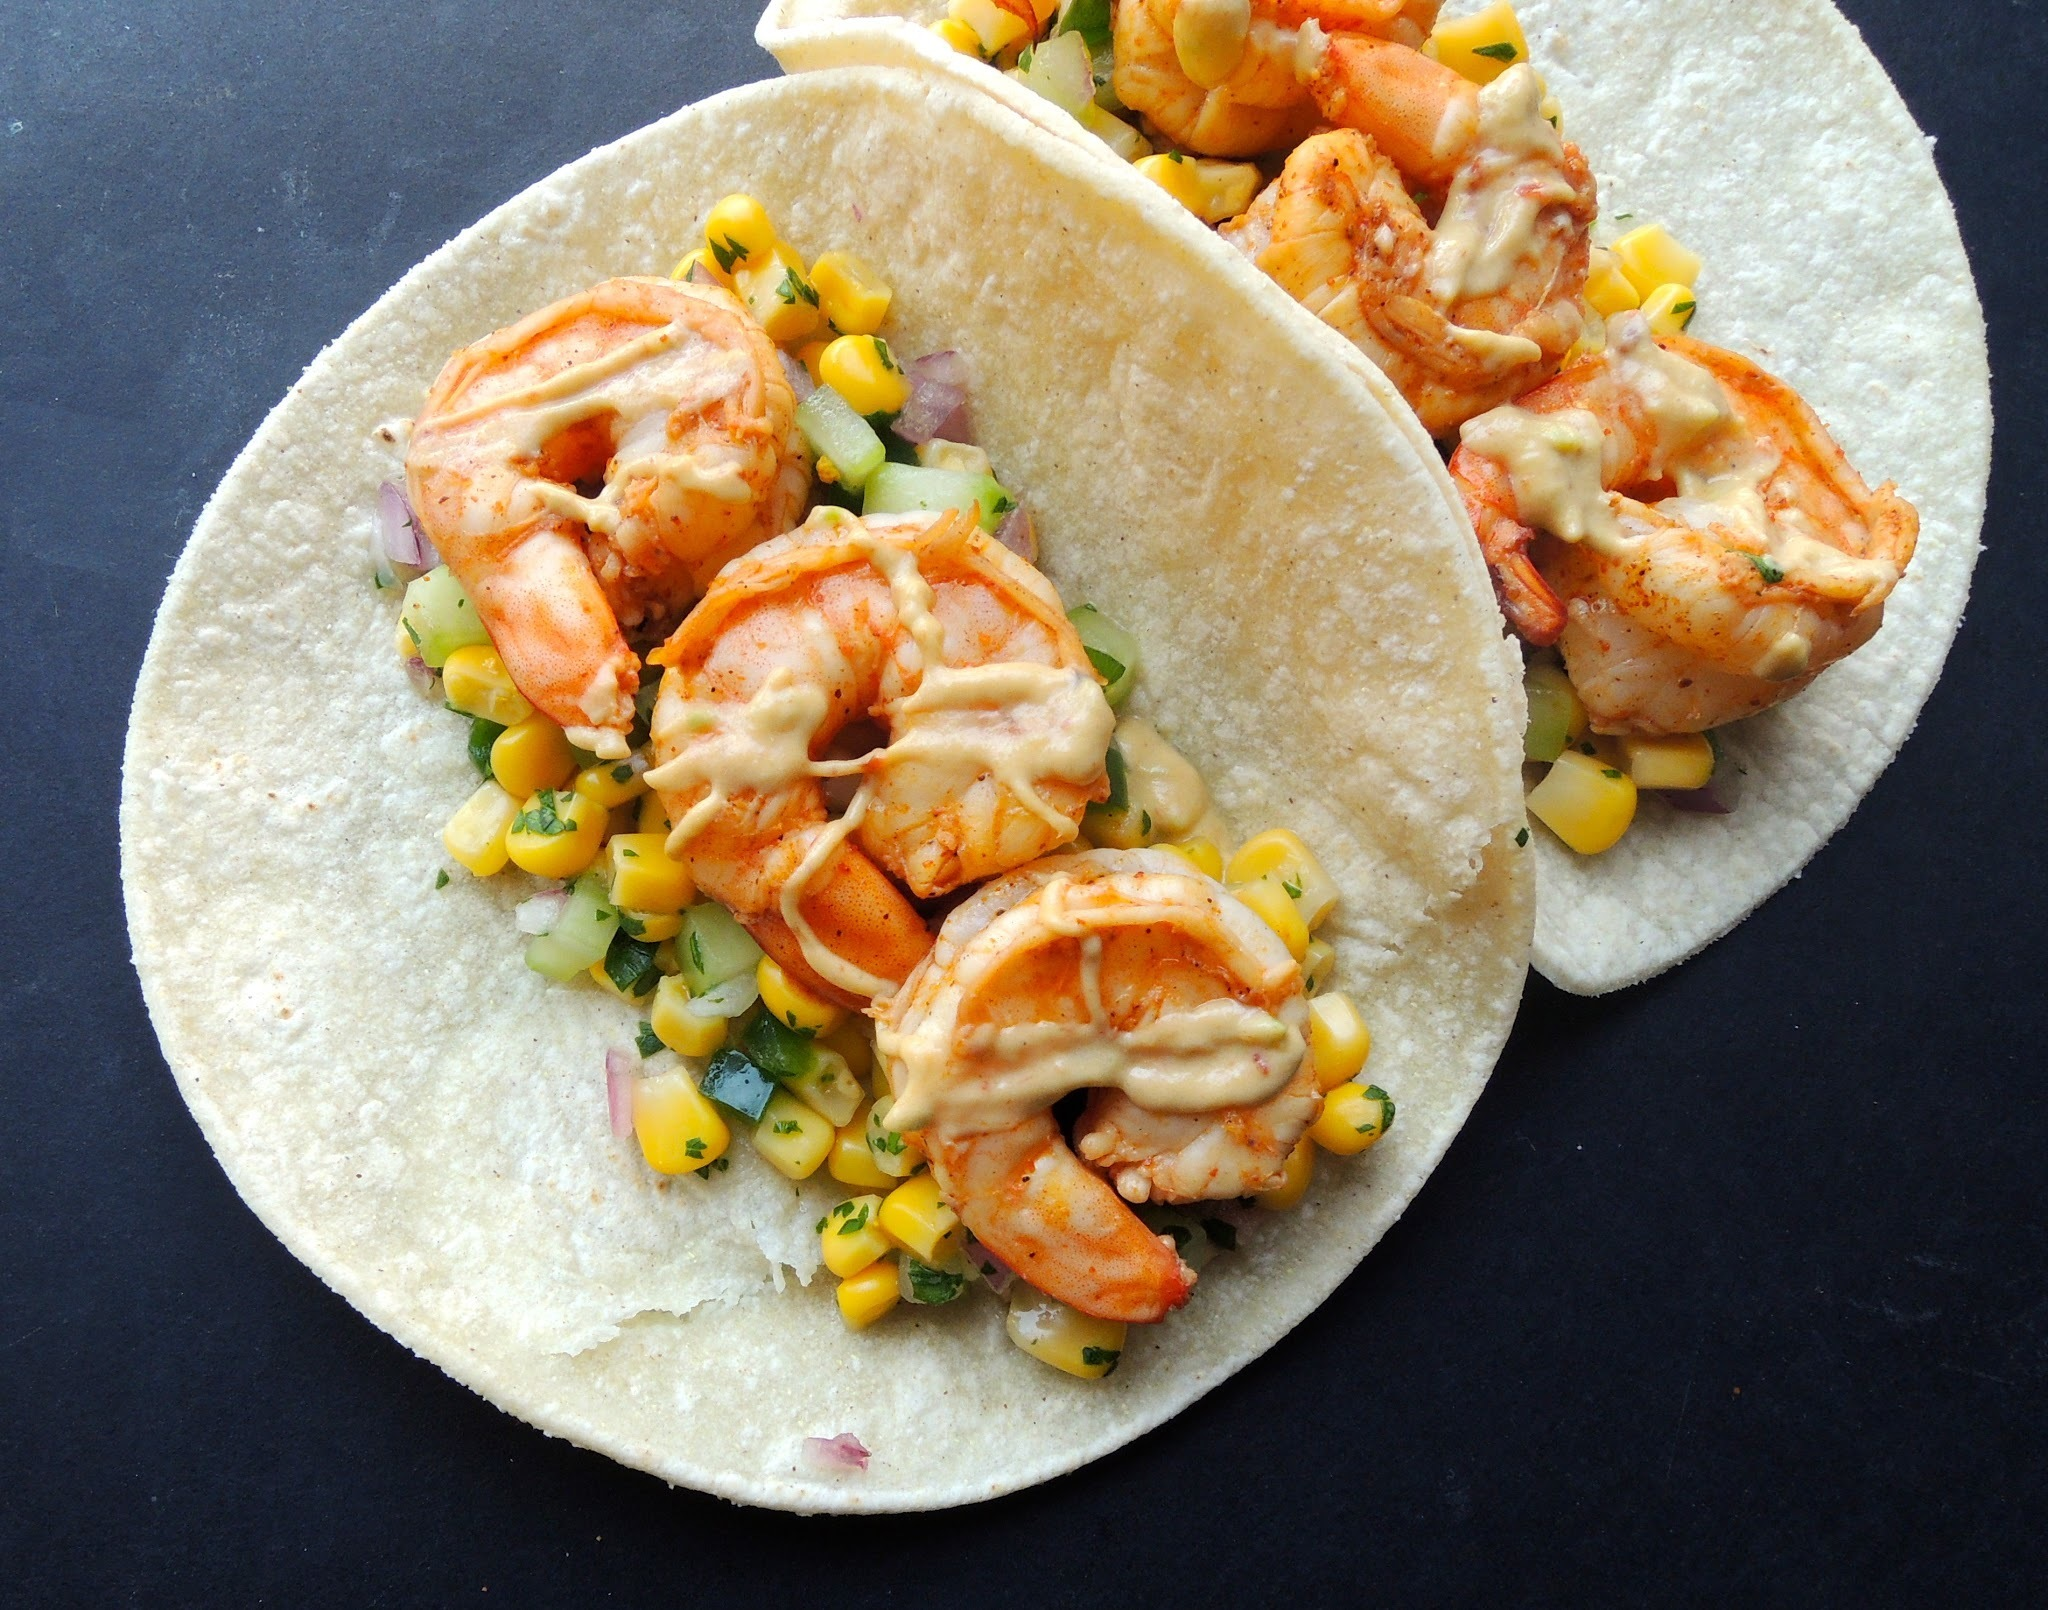 Shrimp Tacos with Corn Salsa and Chipotle-Avocado Crema